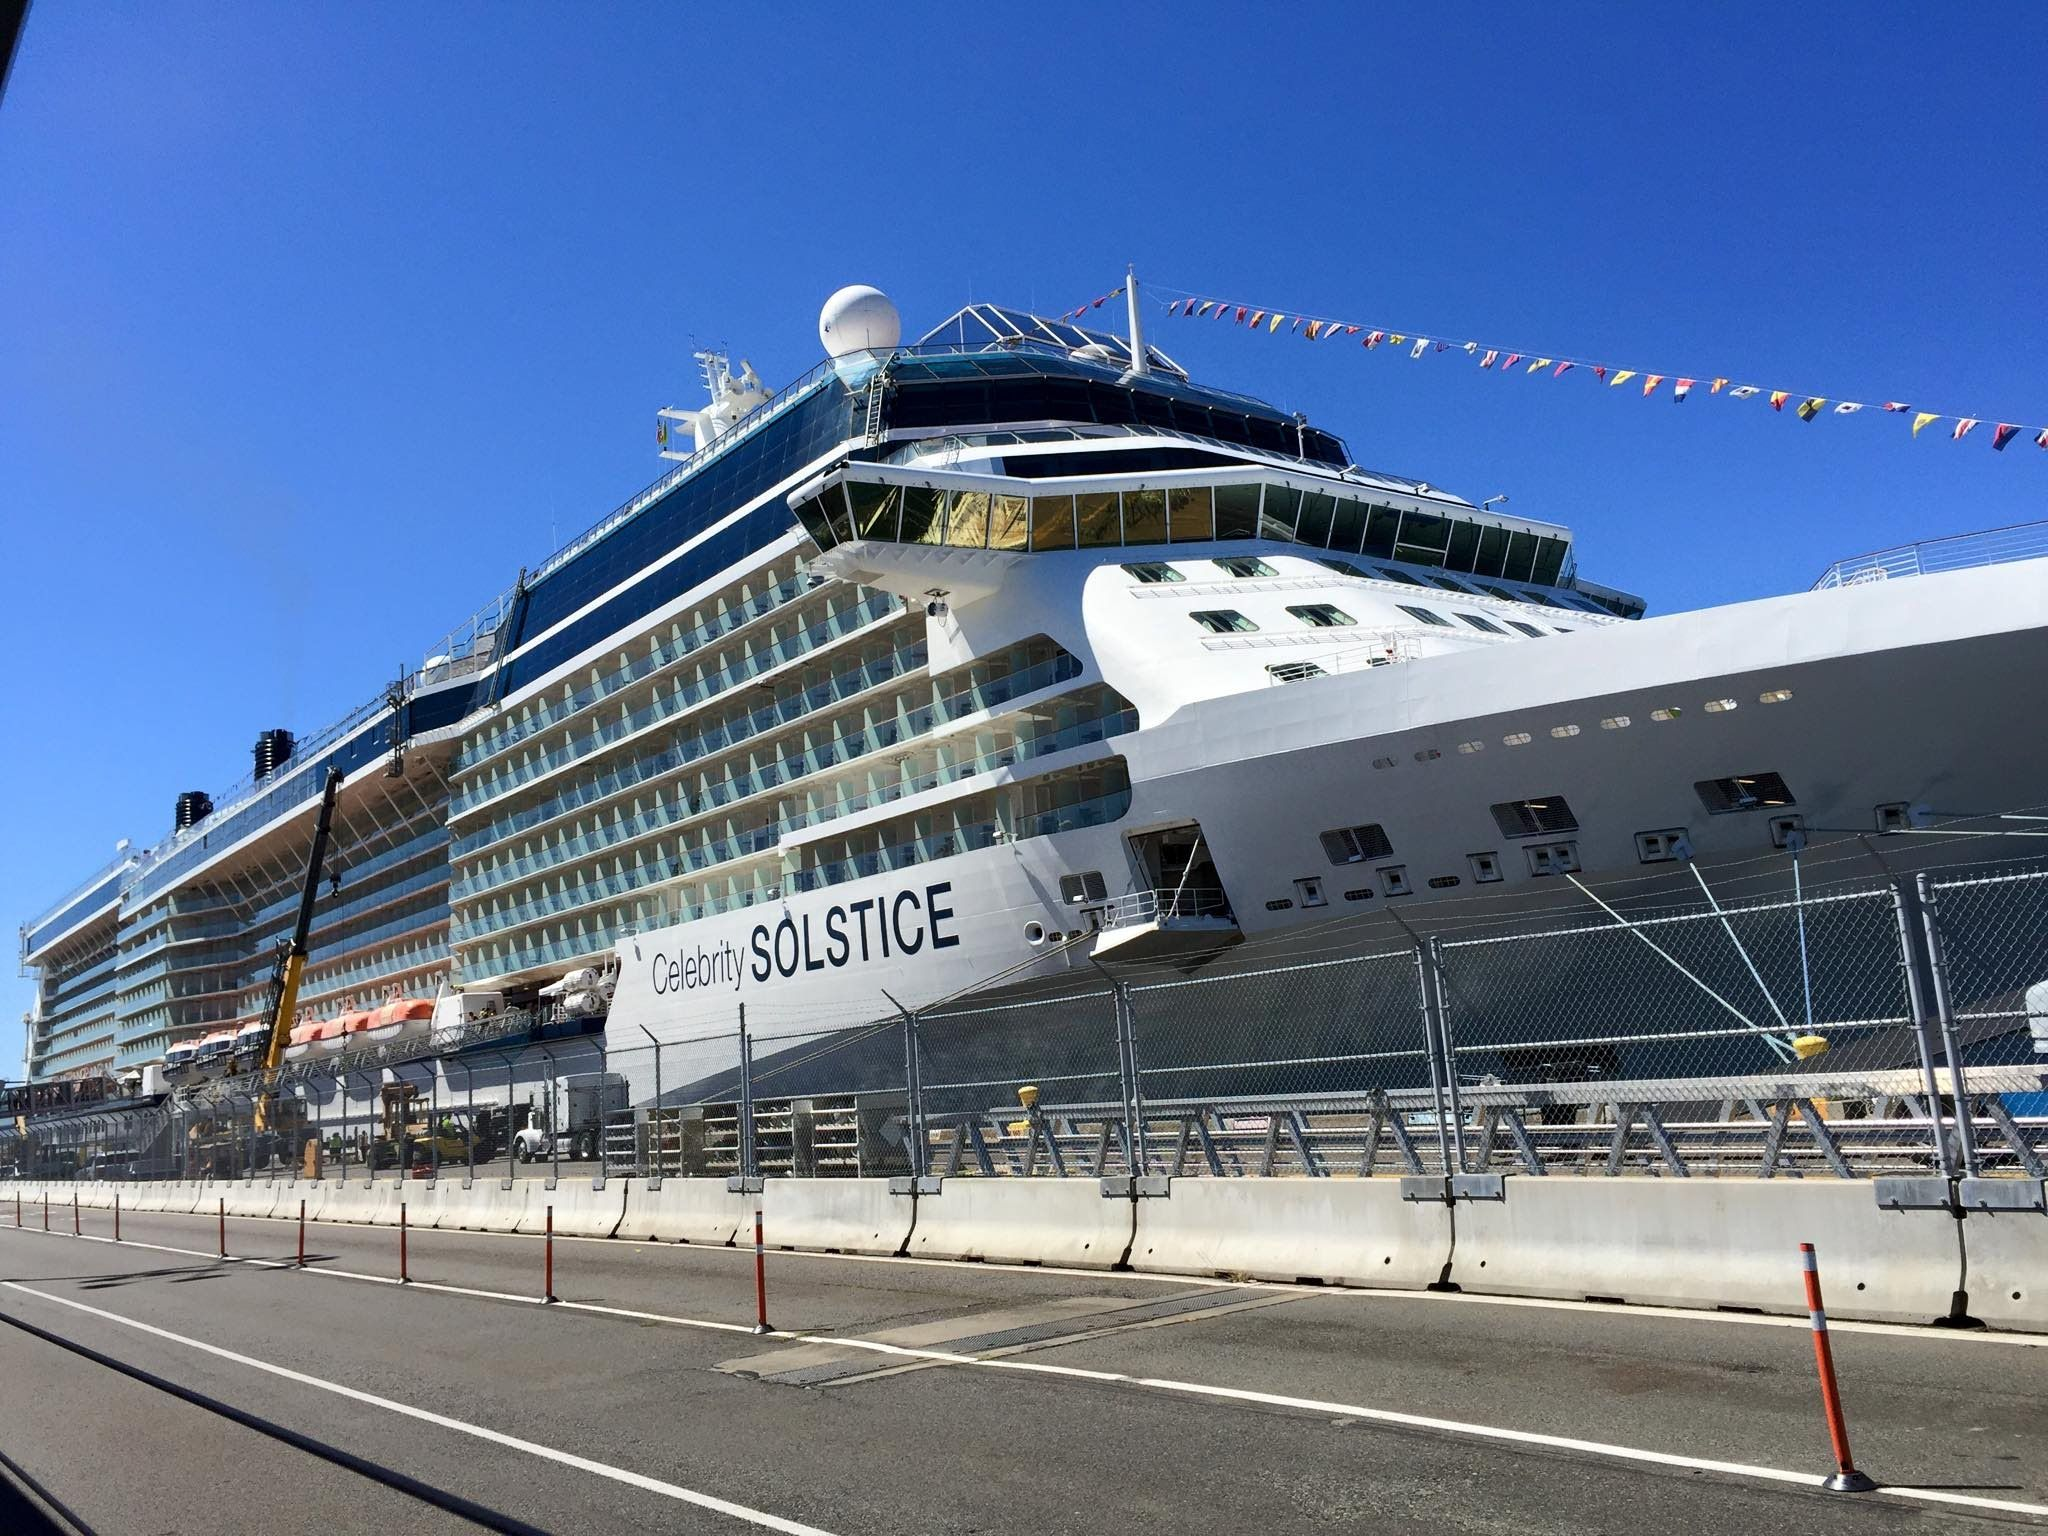 Celebrity Solstice - Itinerary Schedule, Current Position ...